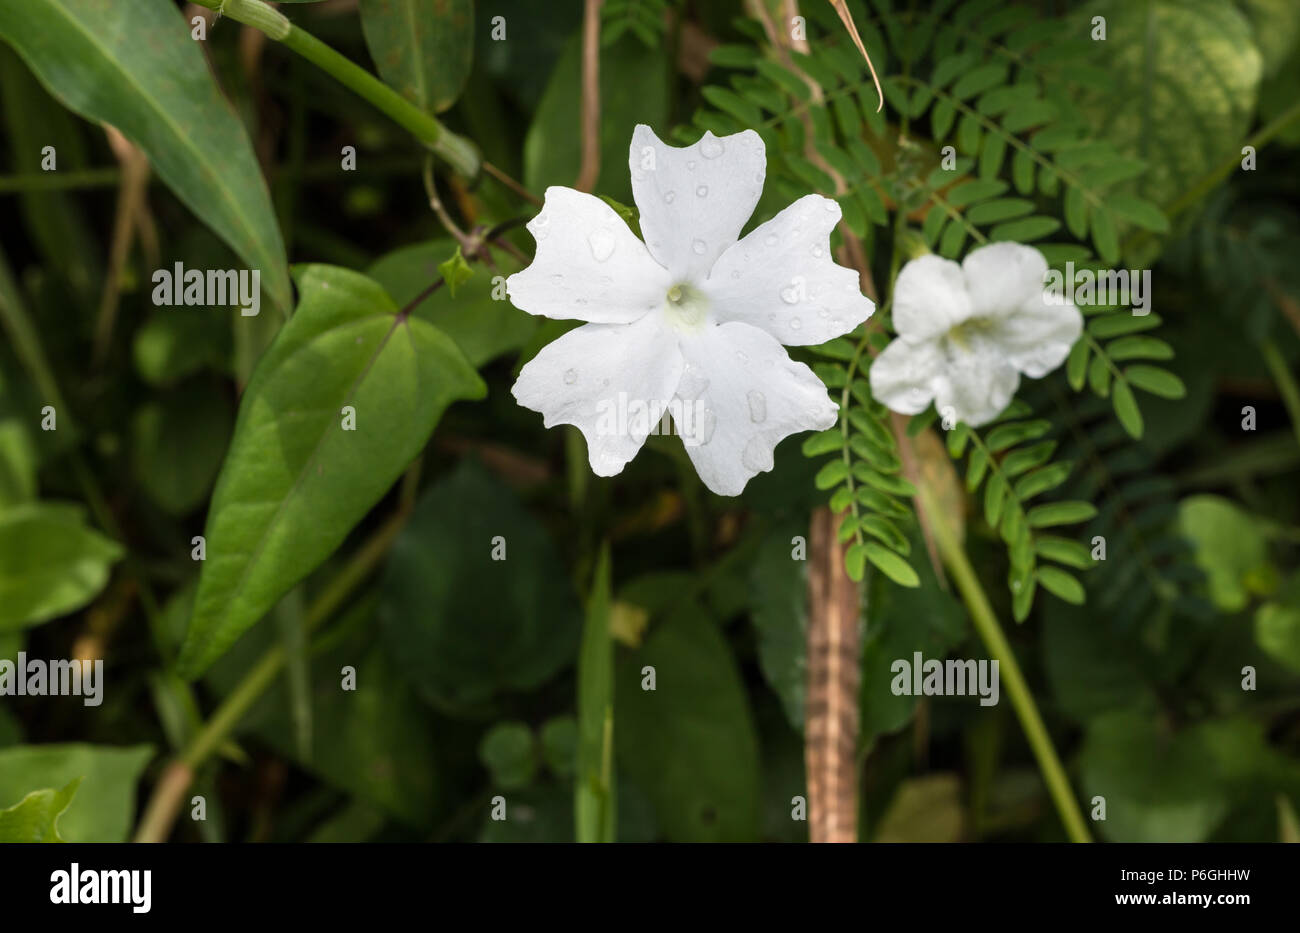 Small white scented flowers stock photos small white scented jasminum sambac also called pikake in hawaiian are small white scented flowers mightylinksfo